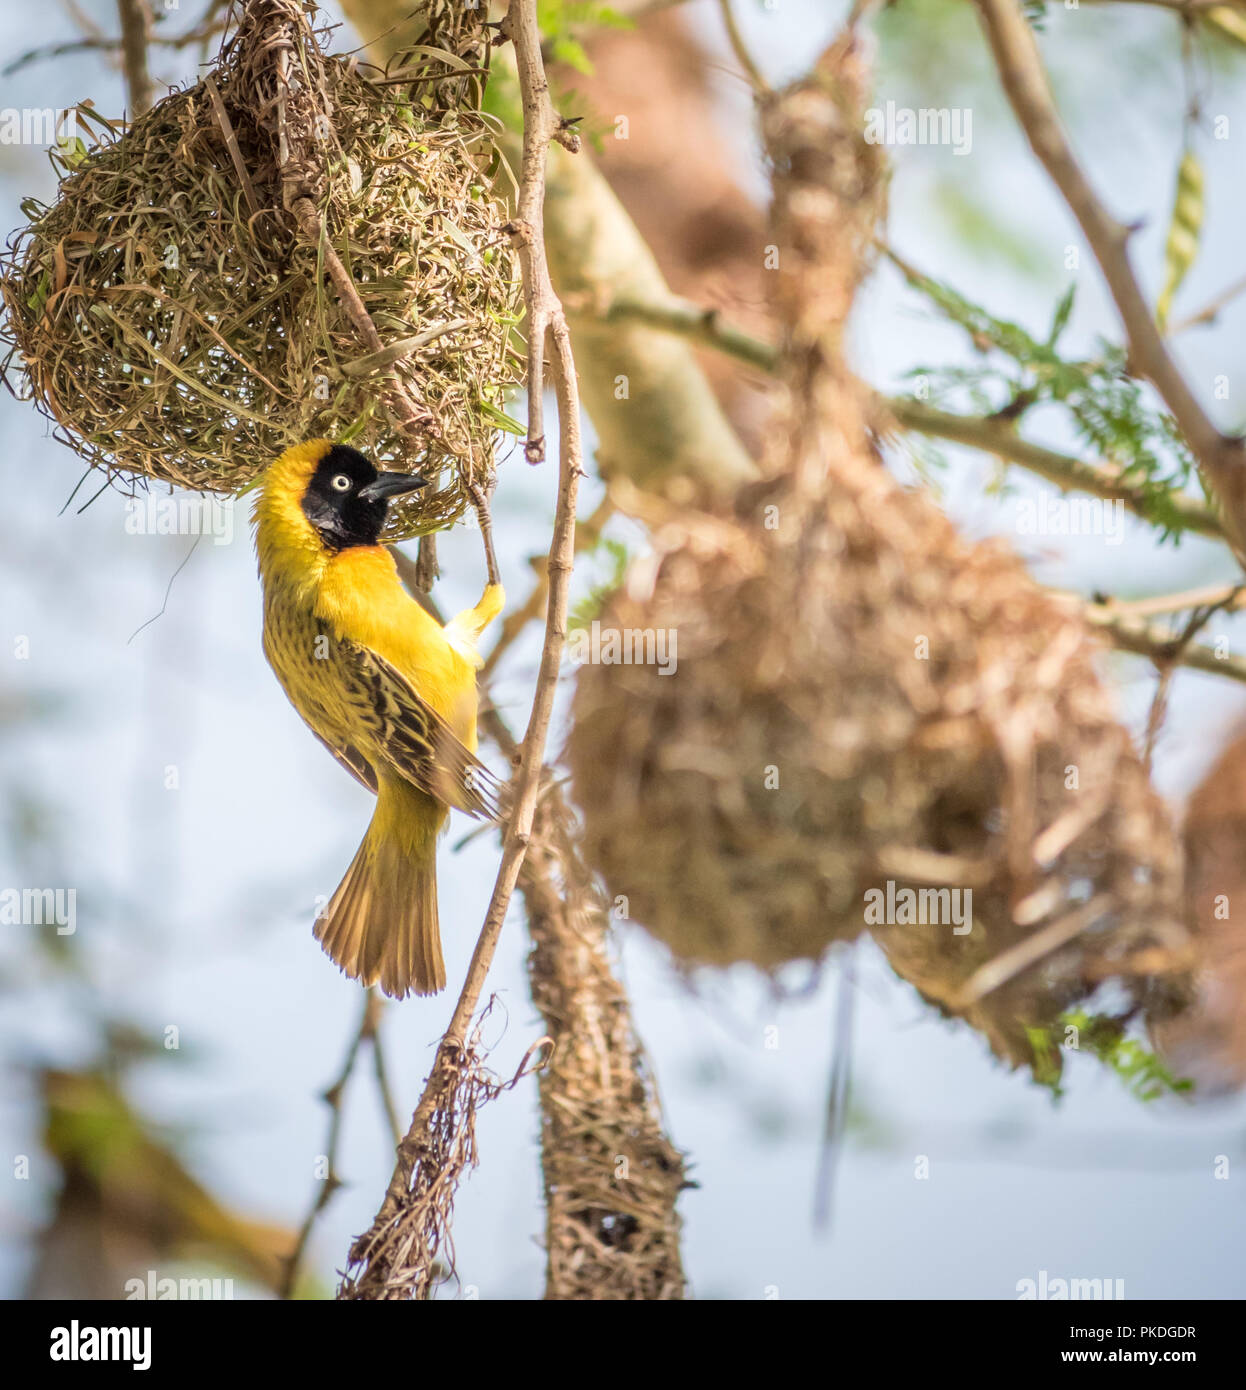 A Male Lesser Masked Weaver Bird Building A Nest In South Africa